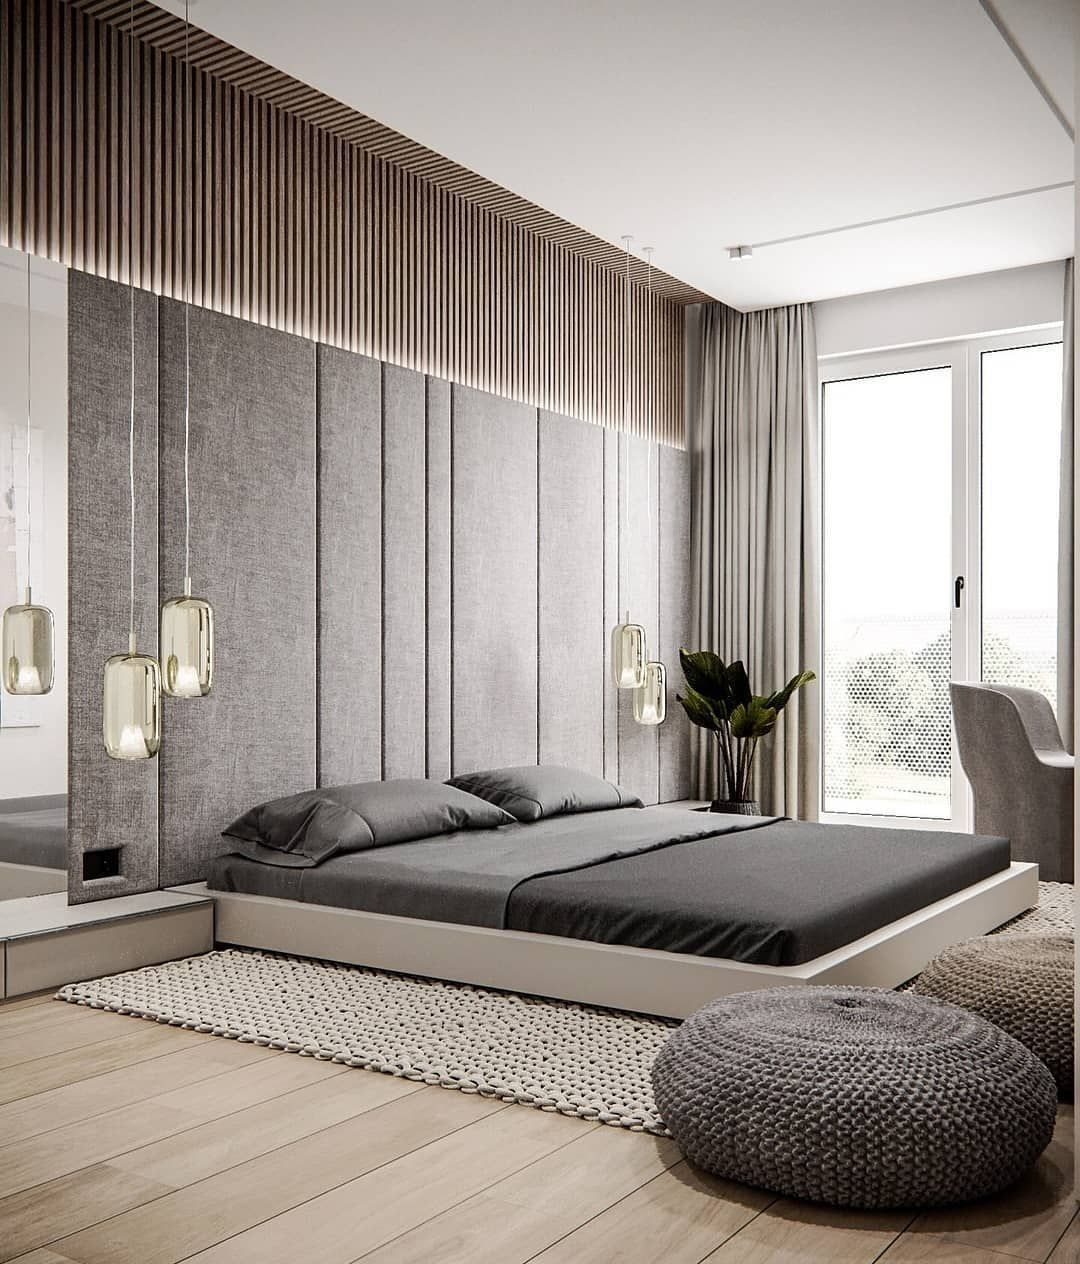 Inspiration To Decorate Your Next Interior Design Project Www Delightfull Eu Visit Us Fo Modern Master Bedroom Design Modern Master Bedroom Bedroom Design